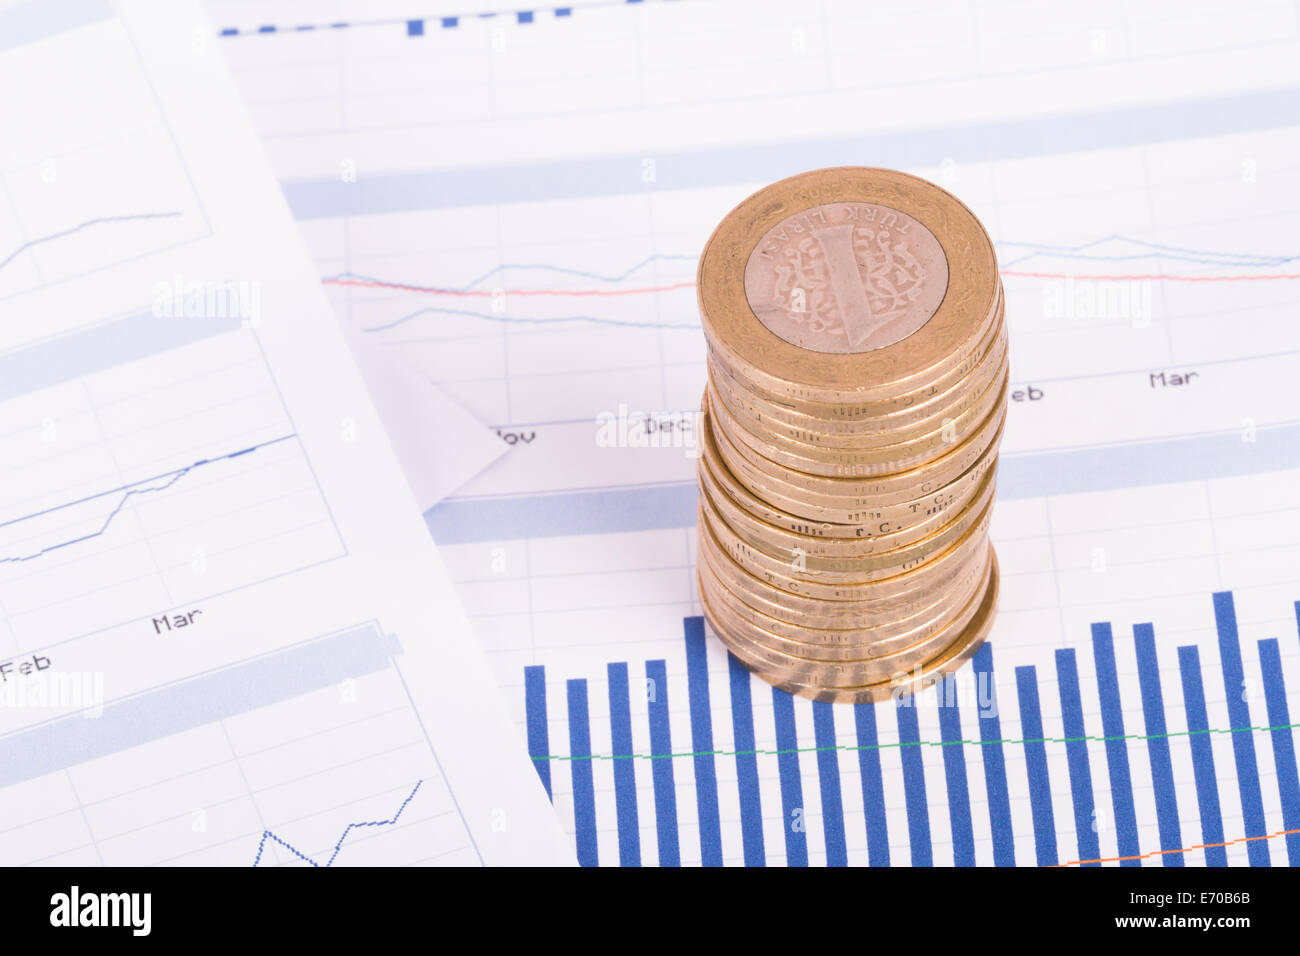 Coins on chart graphs and financial data analysis. - Stock Image